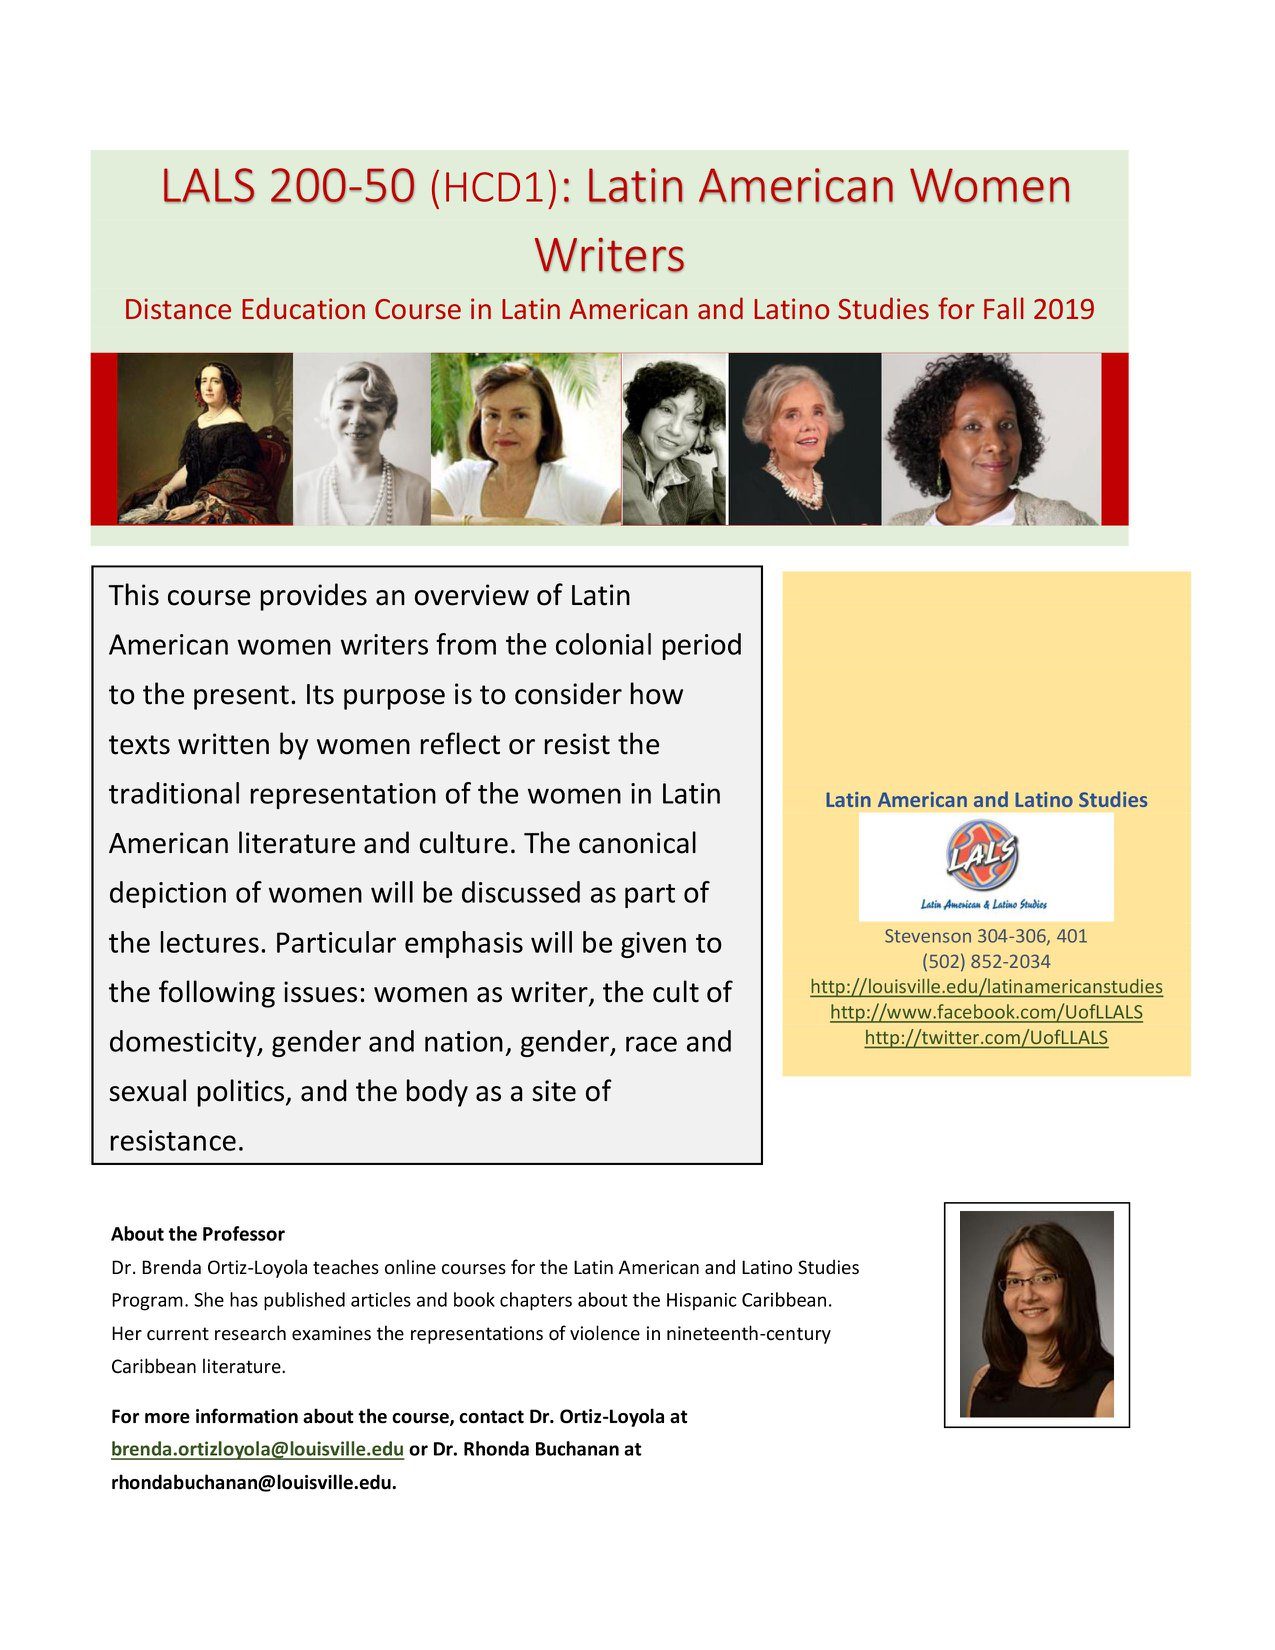 LALS 200 - Latin American Women Writers